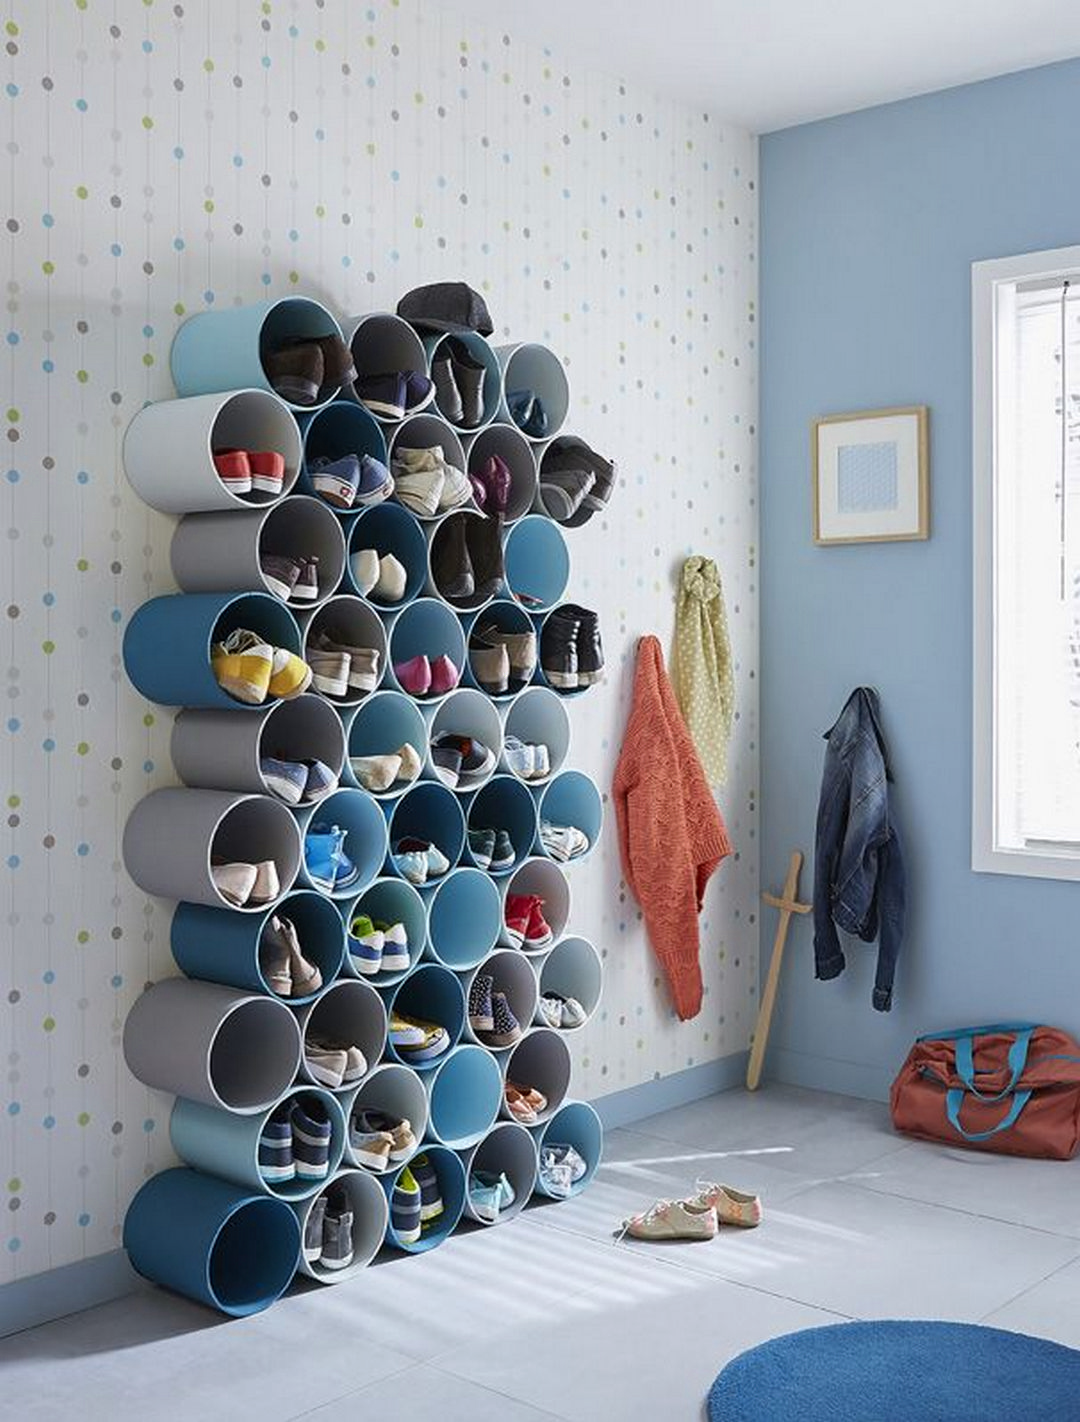 Practical Shoes Rack Design Ideas For Small Homes Kreatywne